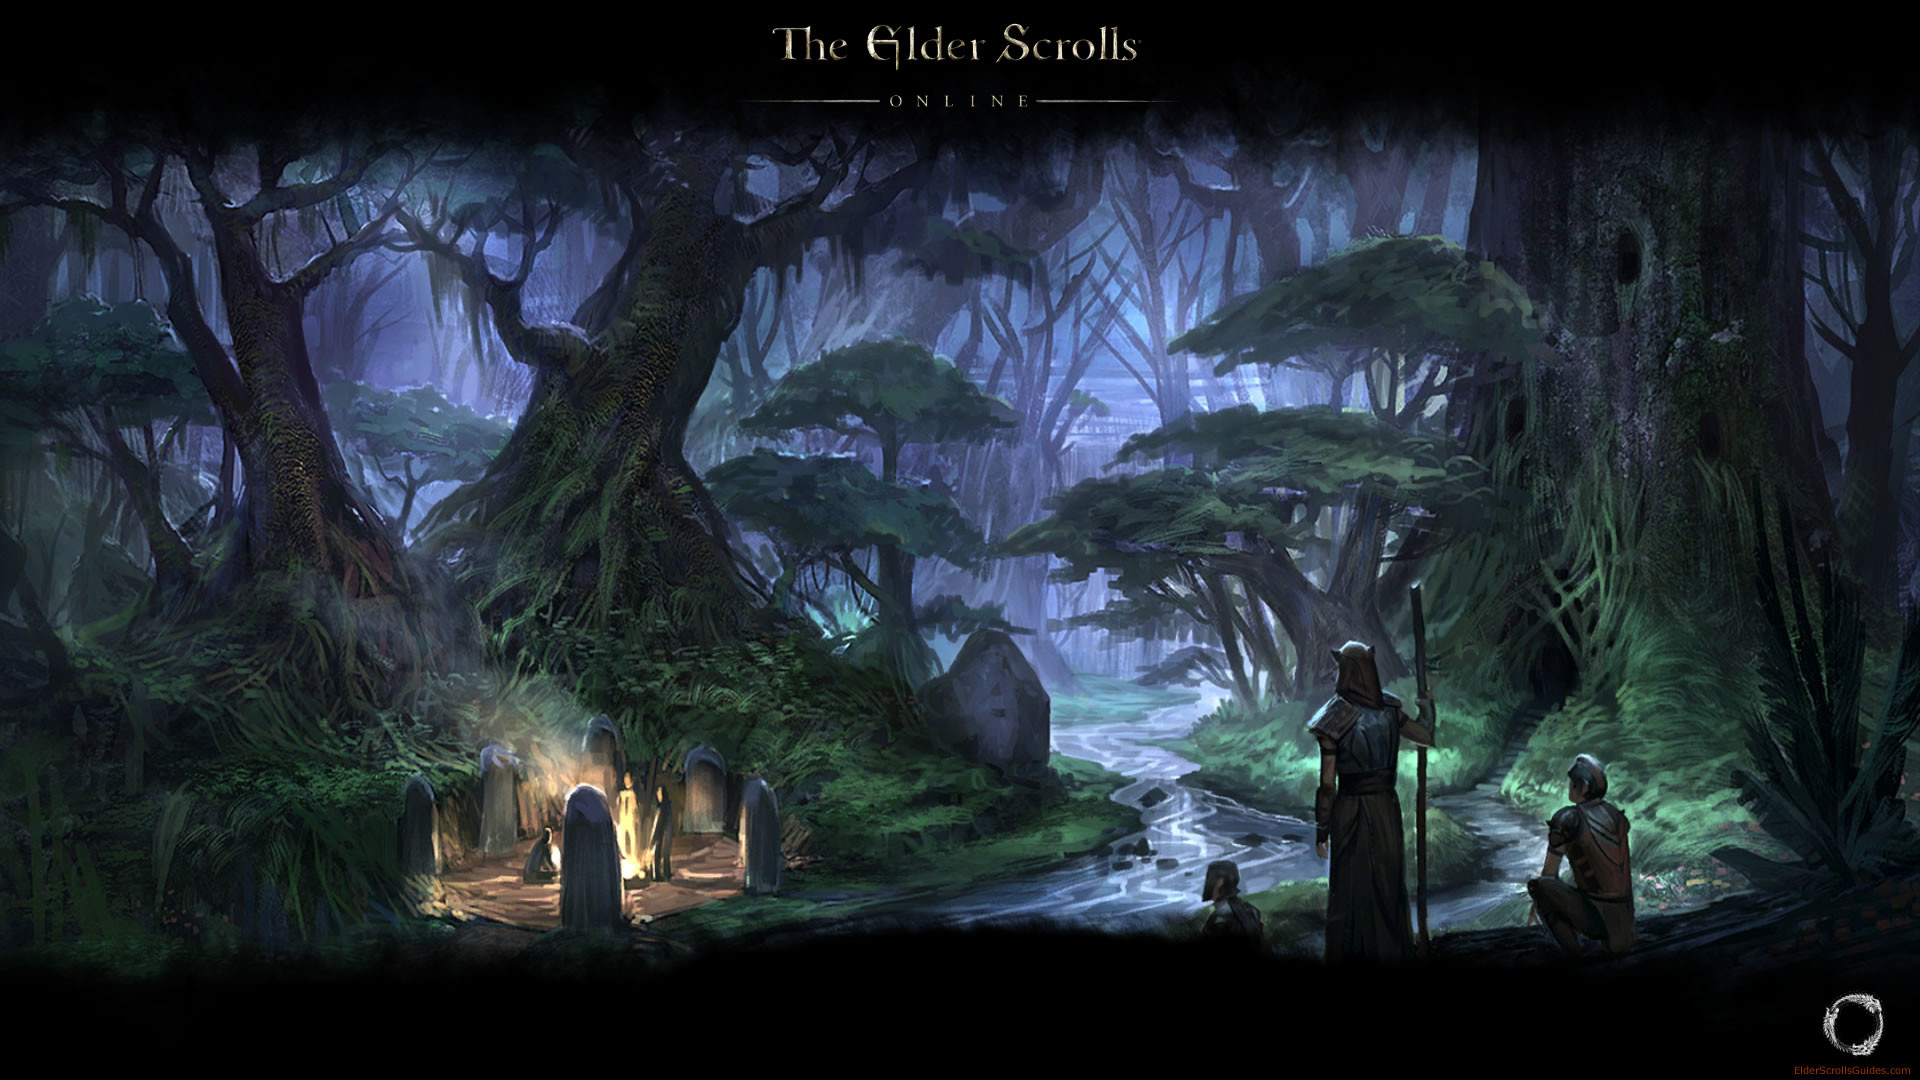 1920x1080 The Elder Scrolls Online images ESO Wallpaper HD wallpaper and background  photos